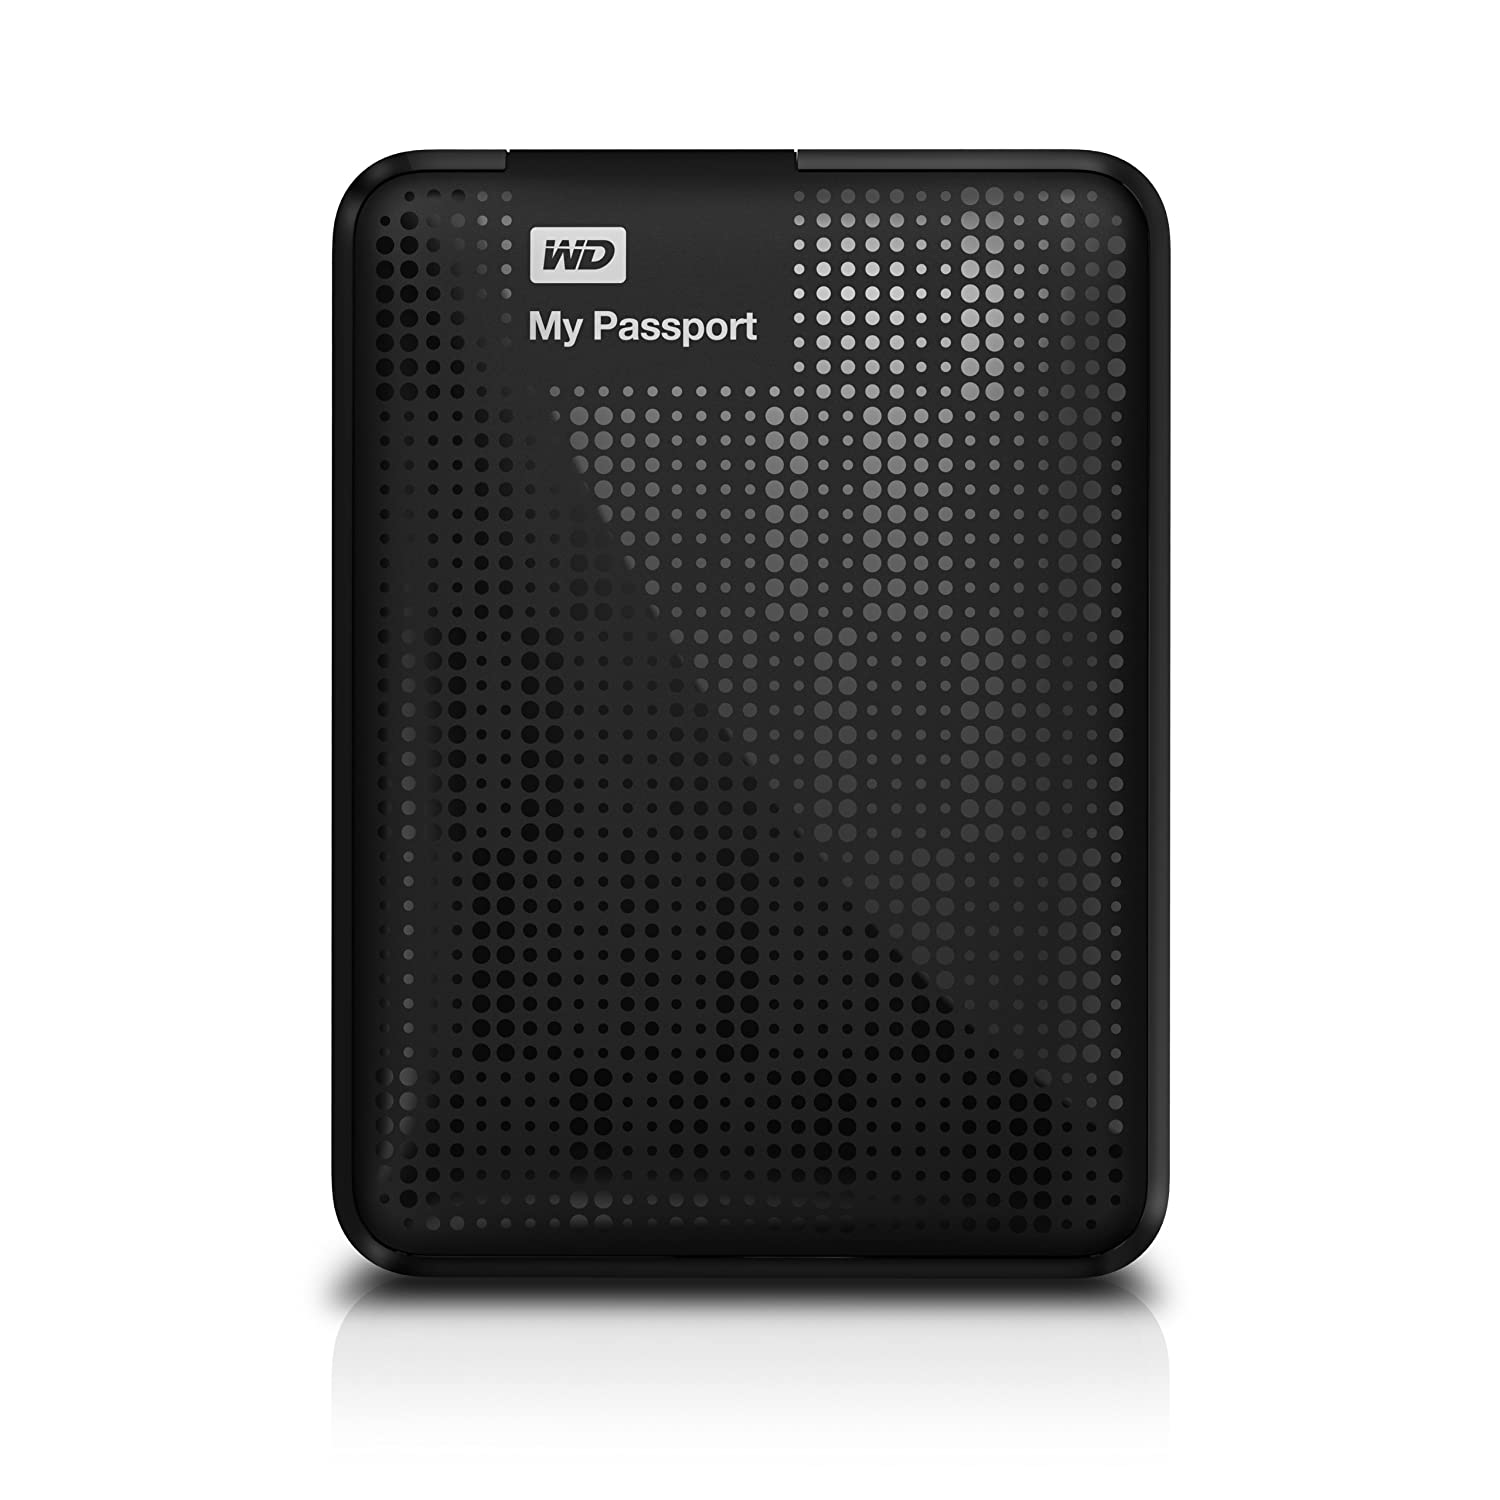 Amazon - WD My Passport 1TB Portable External Hard Drive - $74.99